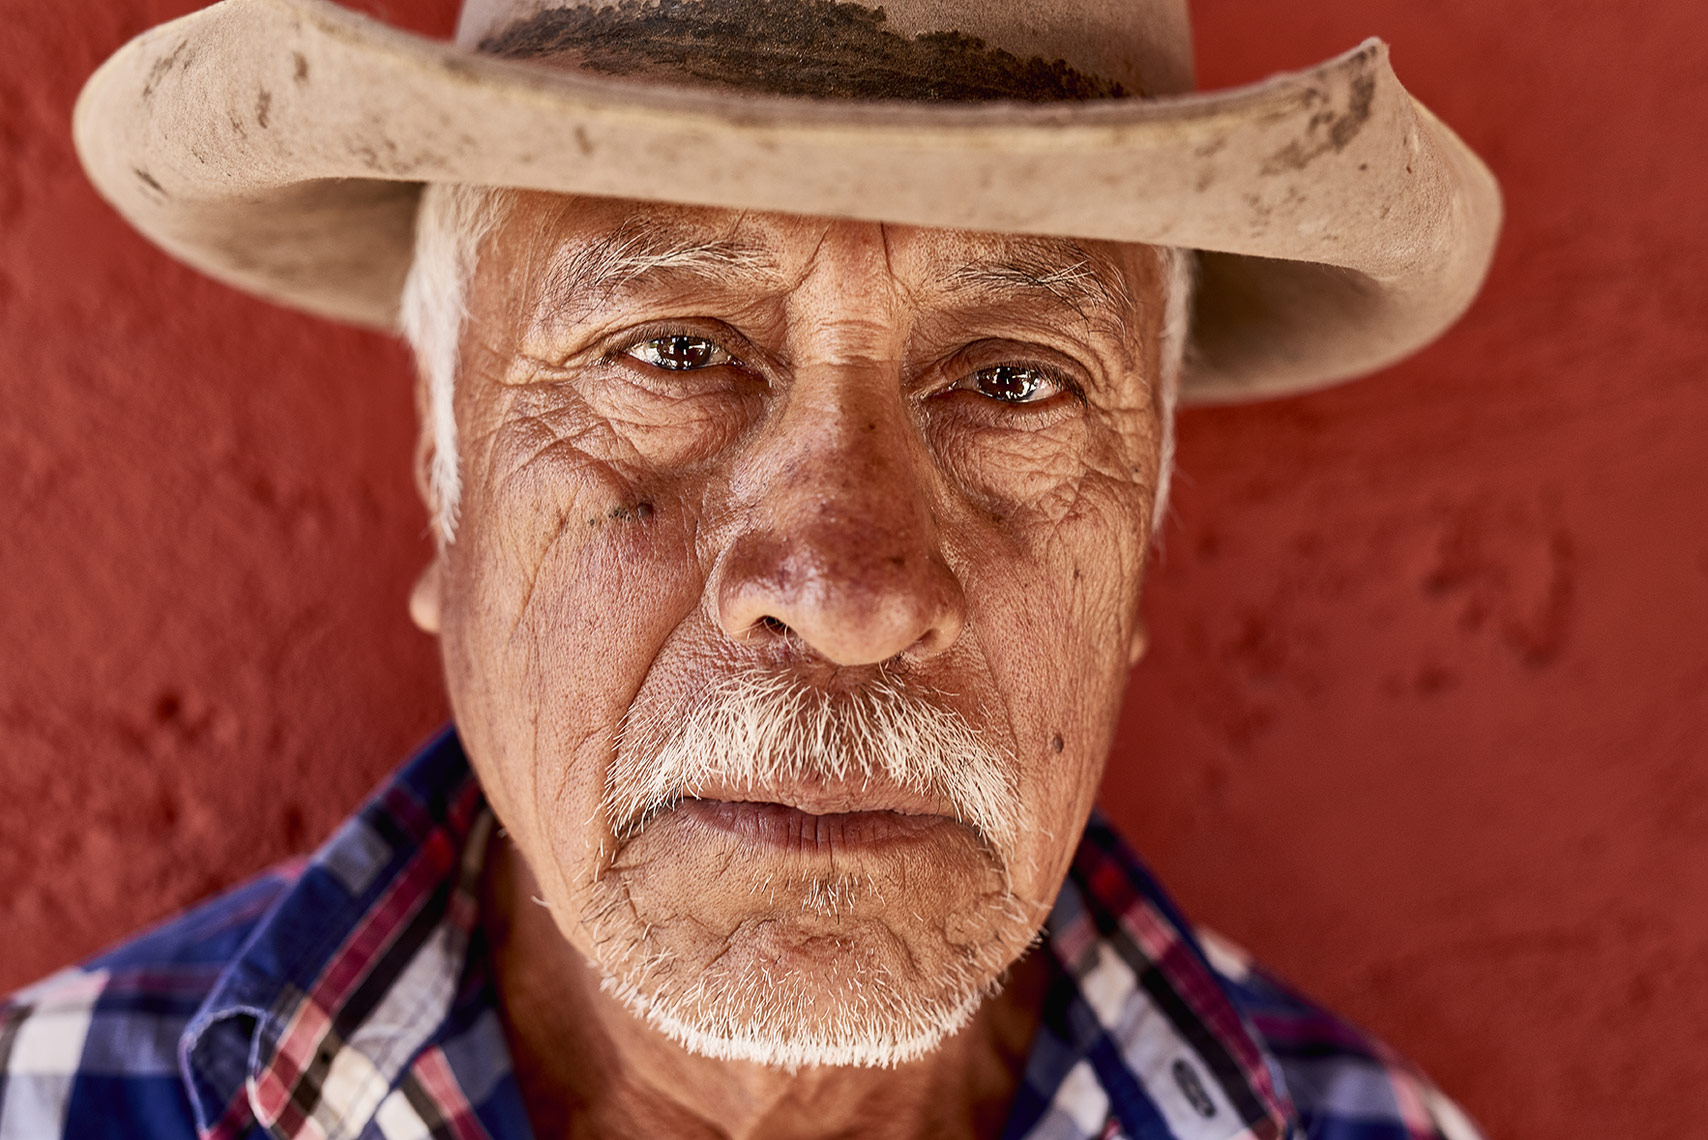 Portrait-of-adult-Mexican-farmer-on-red-wall